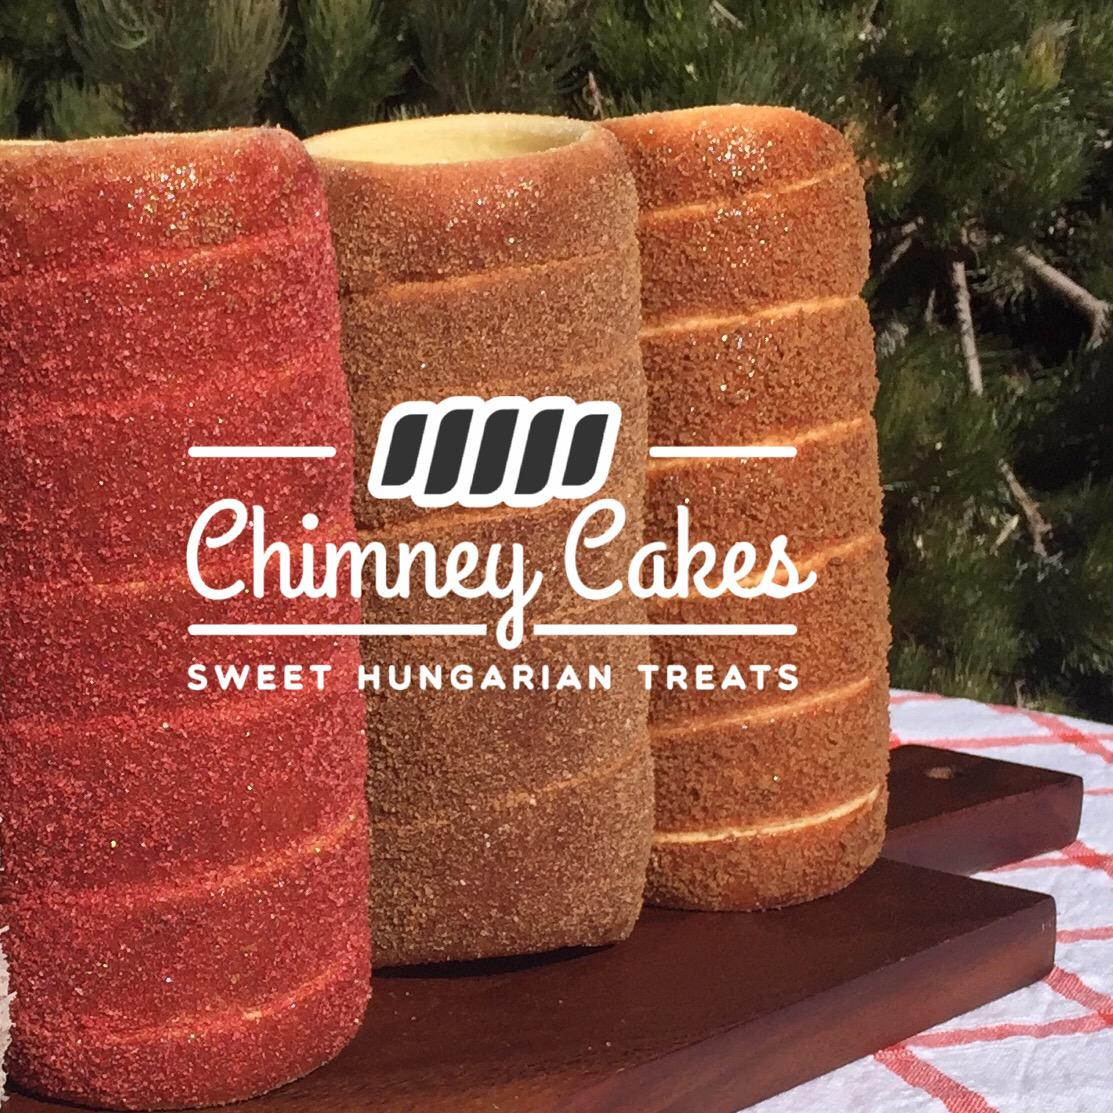 Chimney Cakes Display